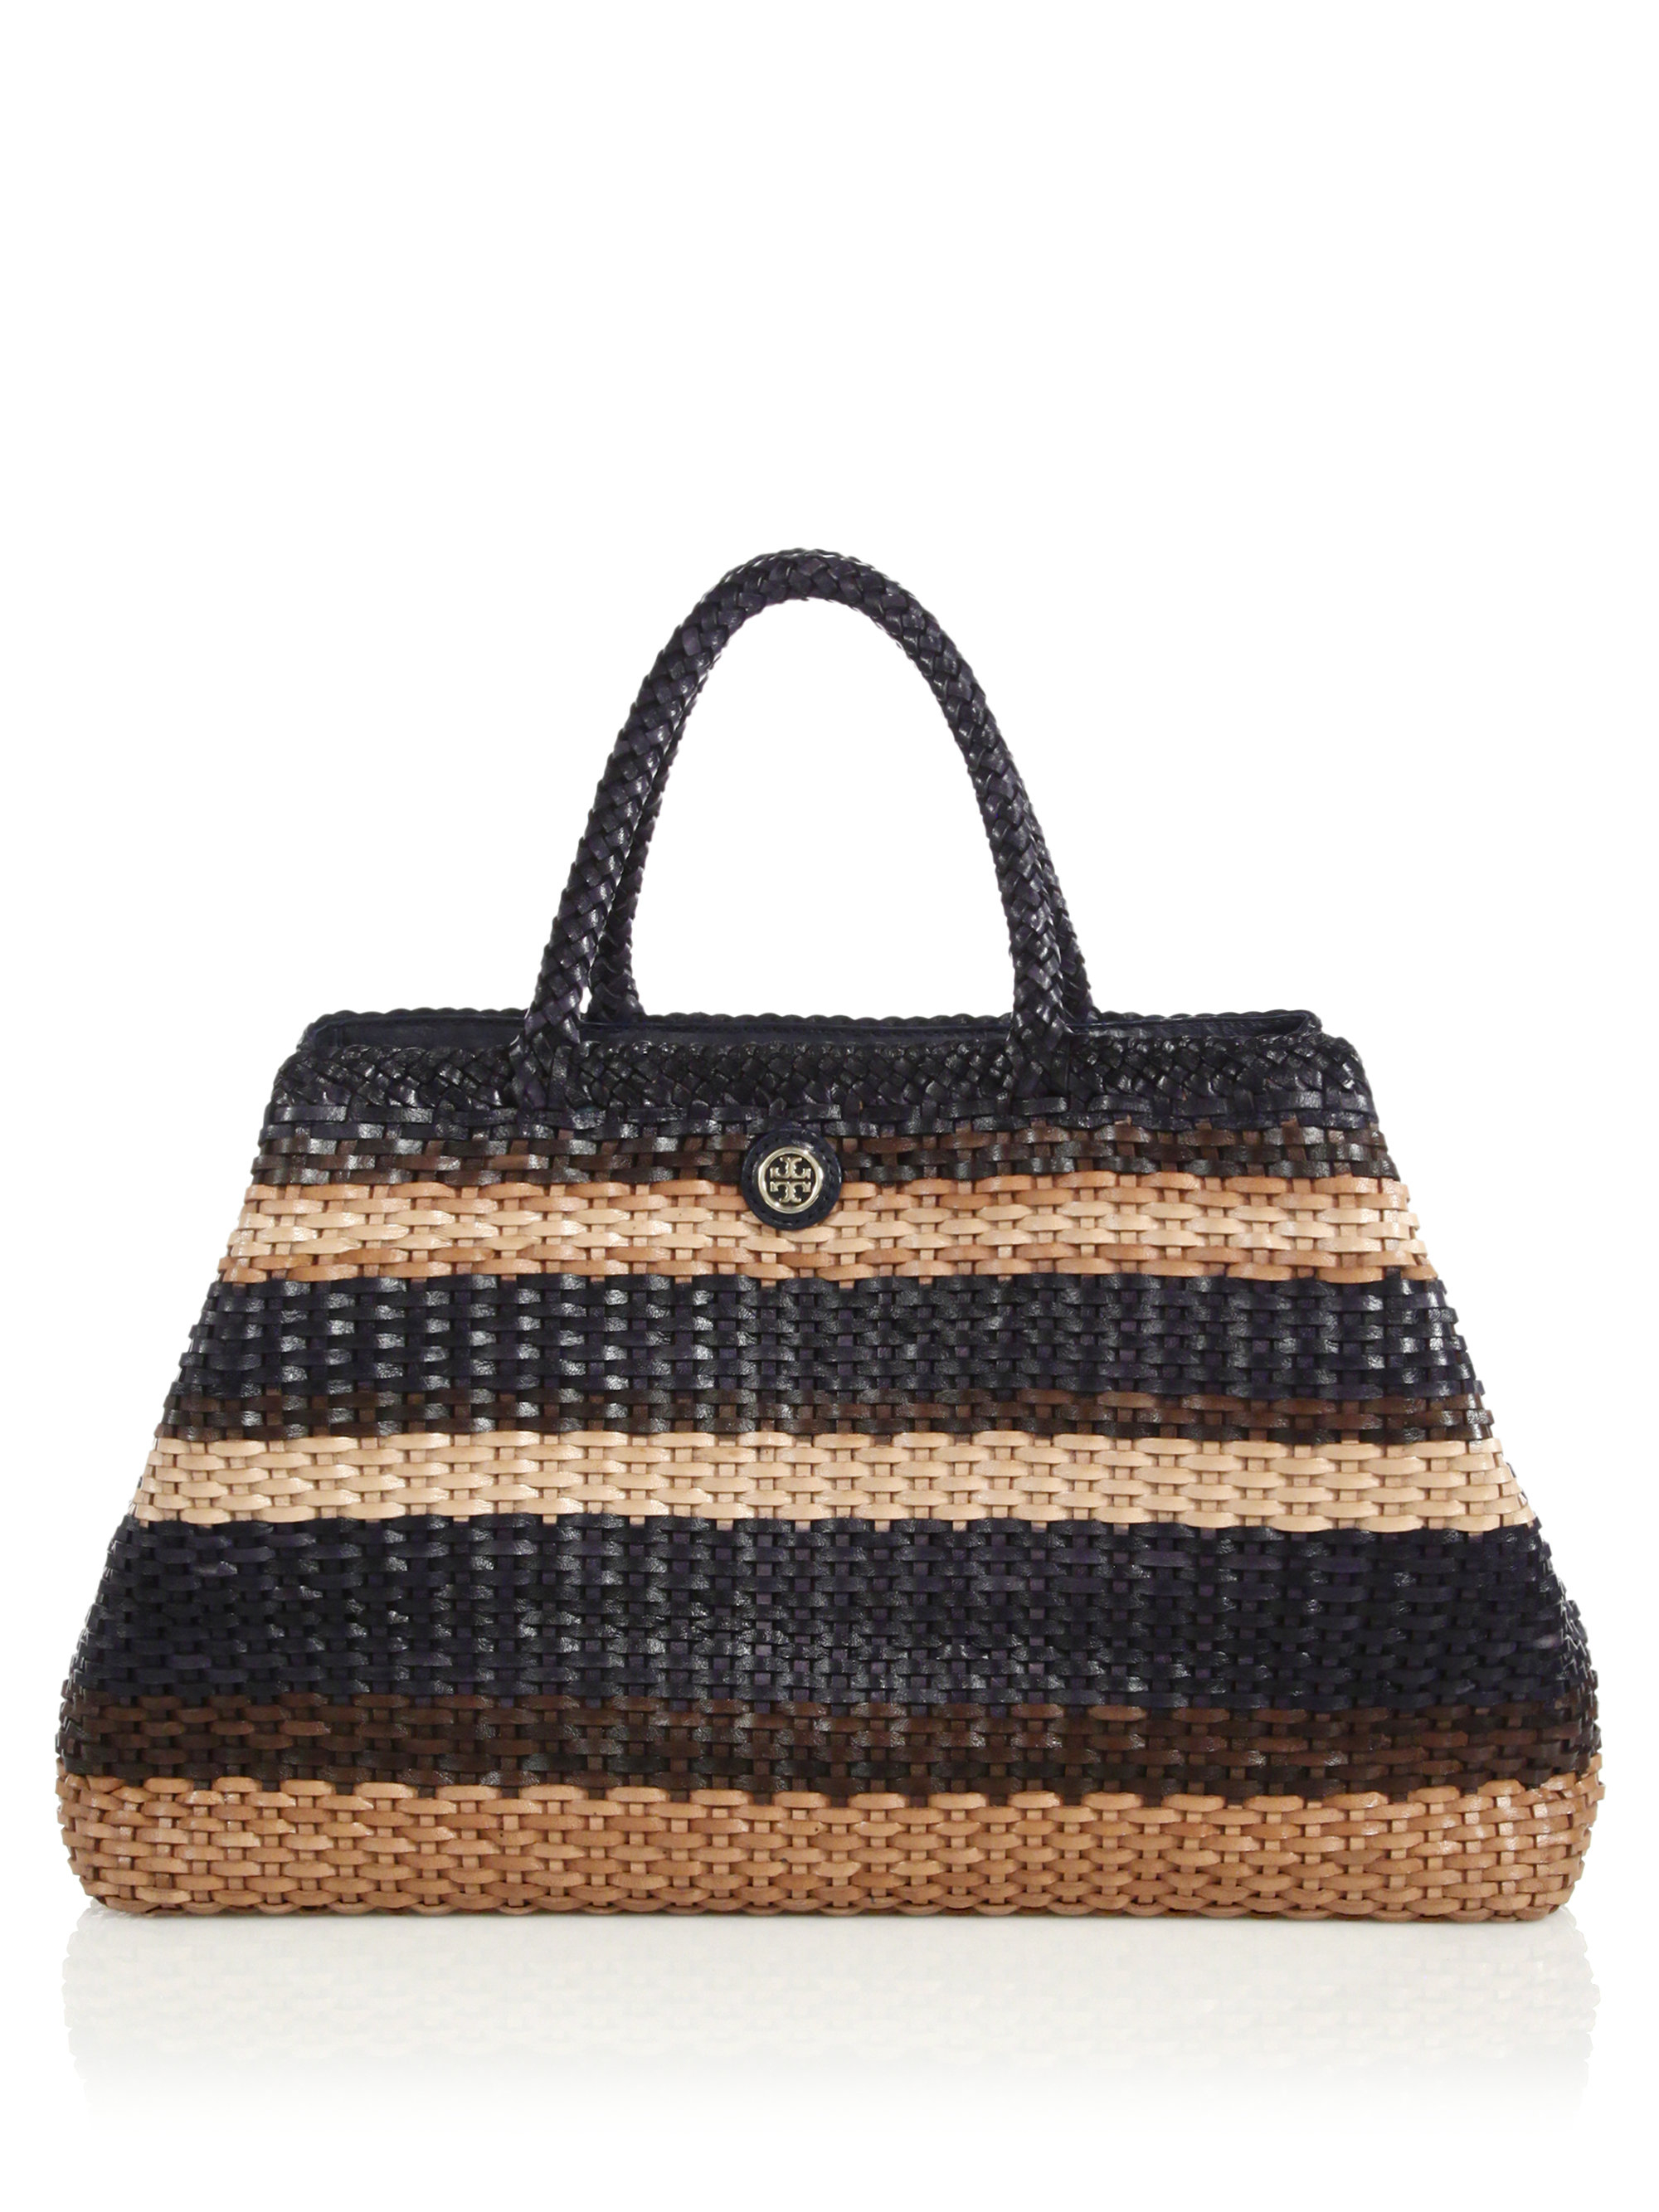 79b46887289 Lyst - Tory Burch Robinson Striped Woven Leather Convertible Tote in ...